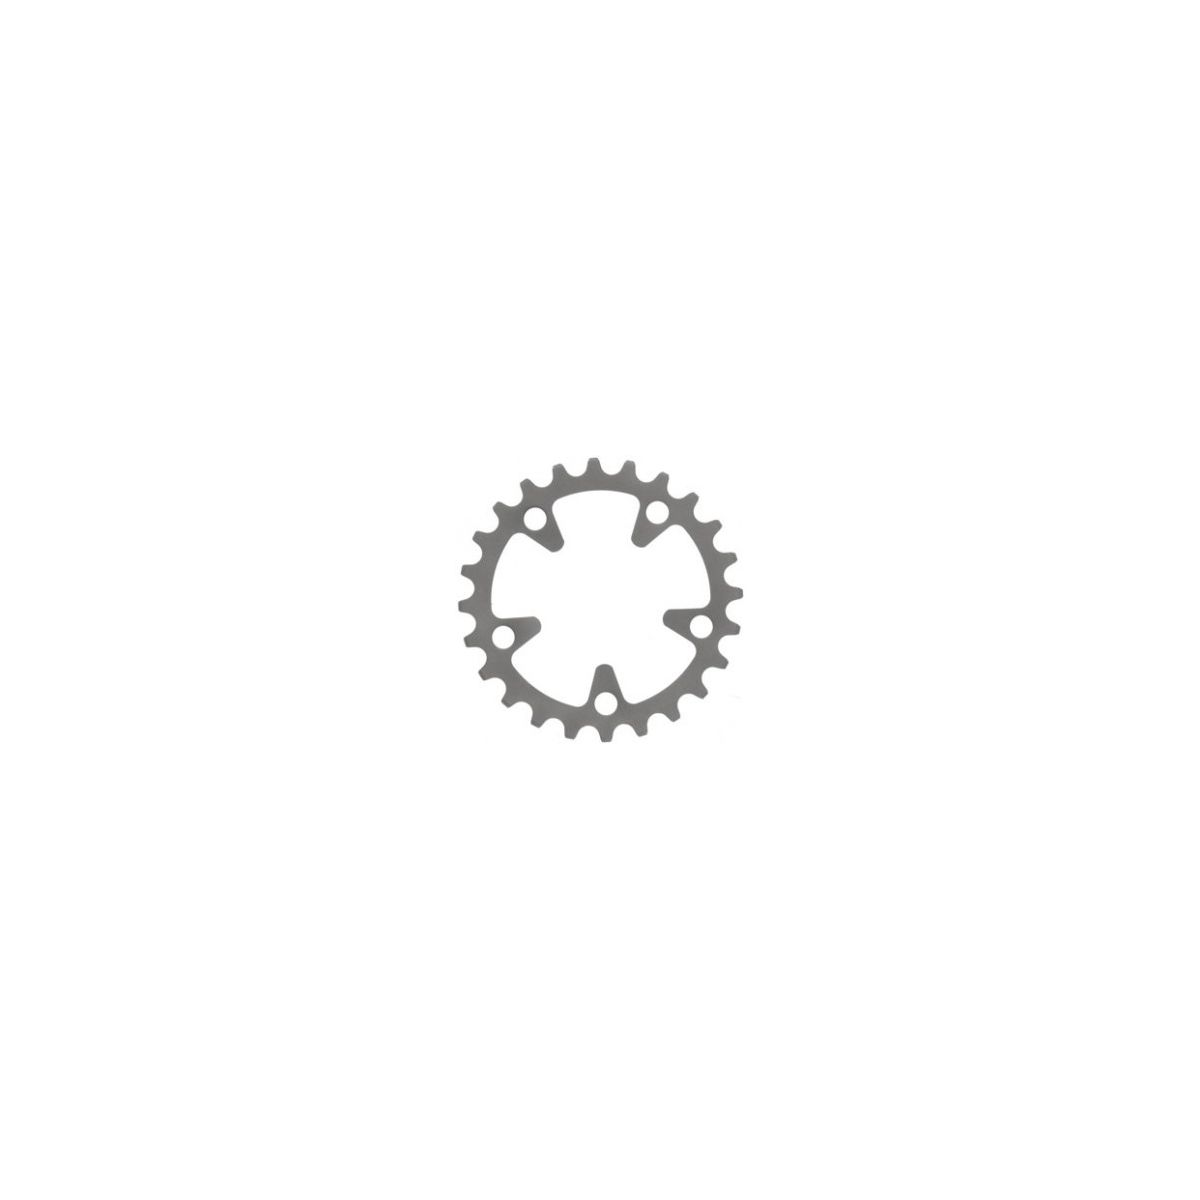 Zephyr 8-/9-/10-speed 24-tooth chainring